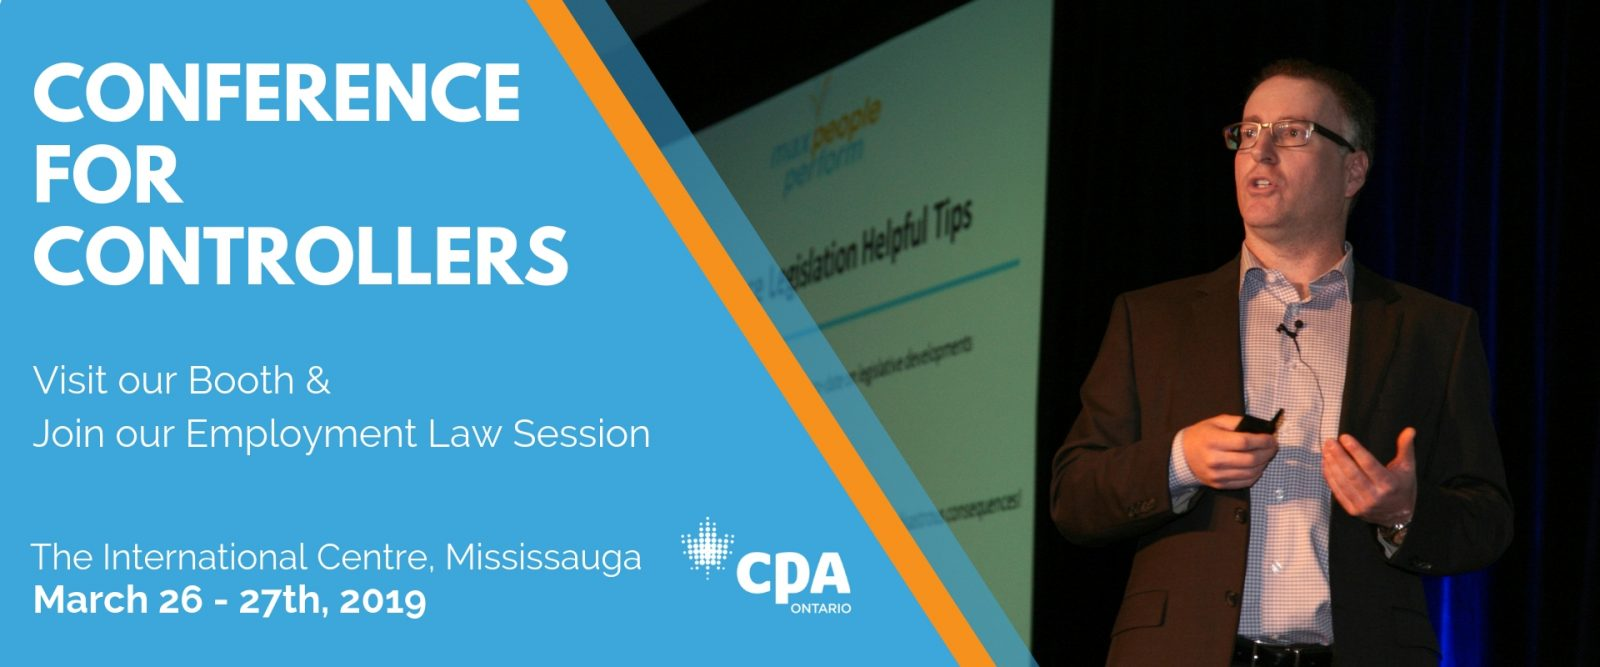 2019 CPA Controller Conference Promotional Image - Jordan Rodney speaking at conference